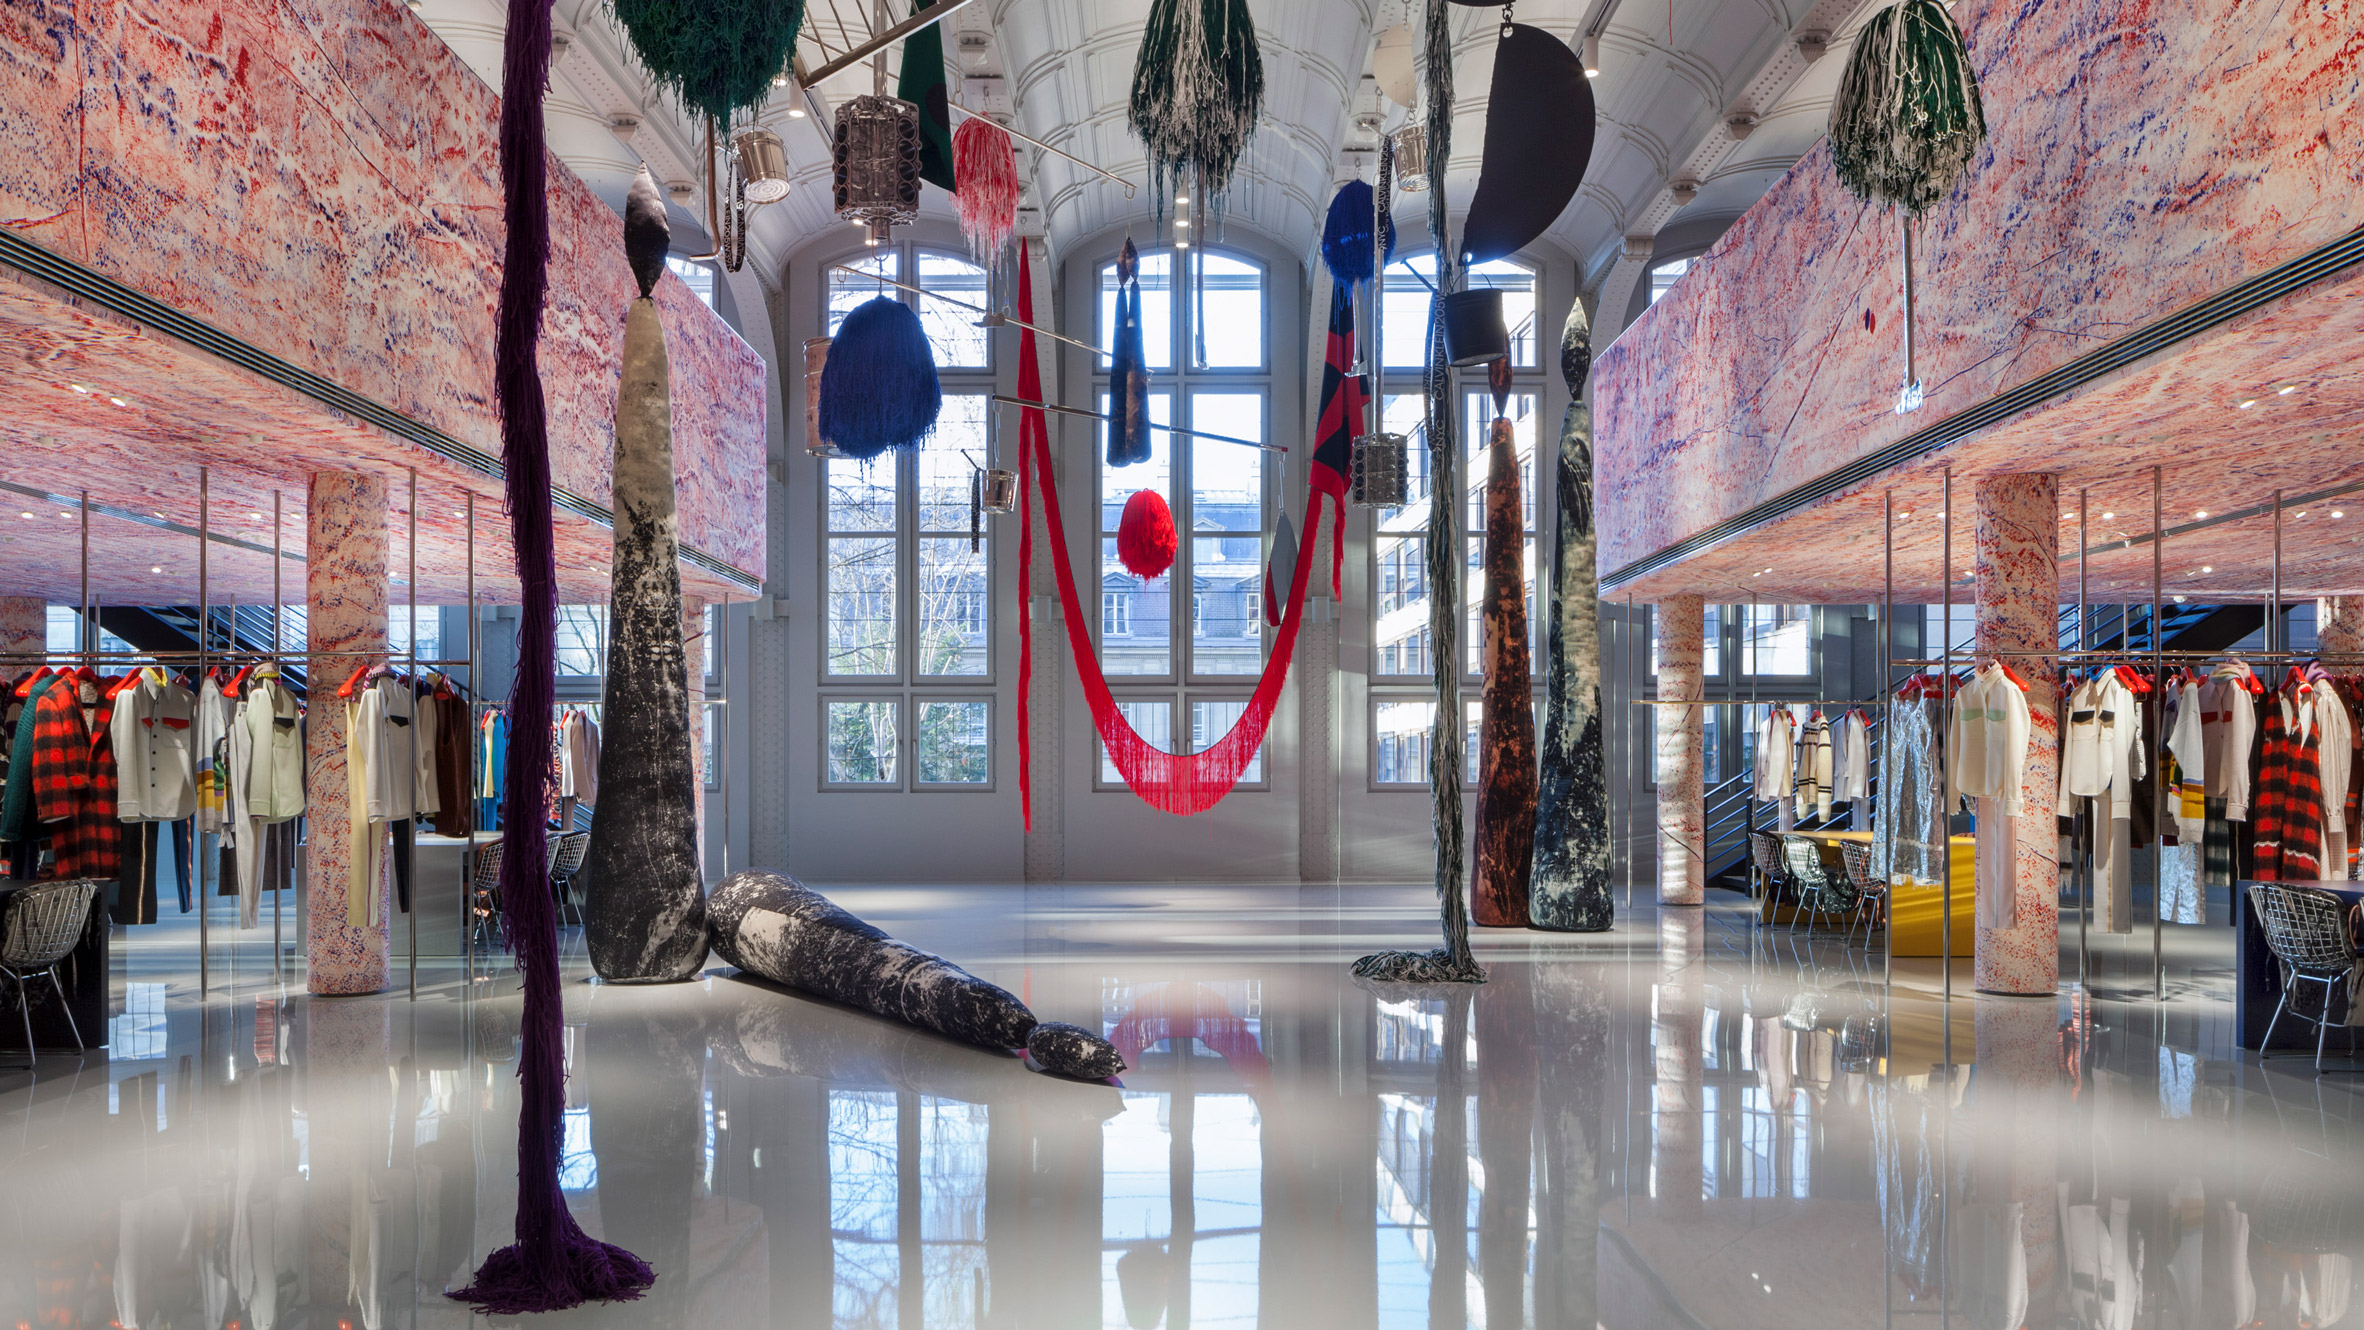 Calvin Klein opens Paris HQ with interiors created by Sterling Ruby   Dezeen